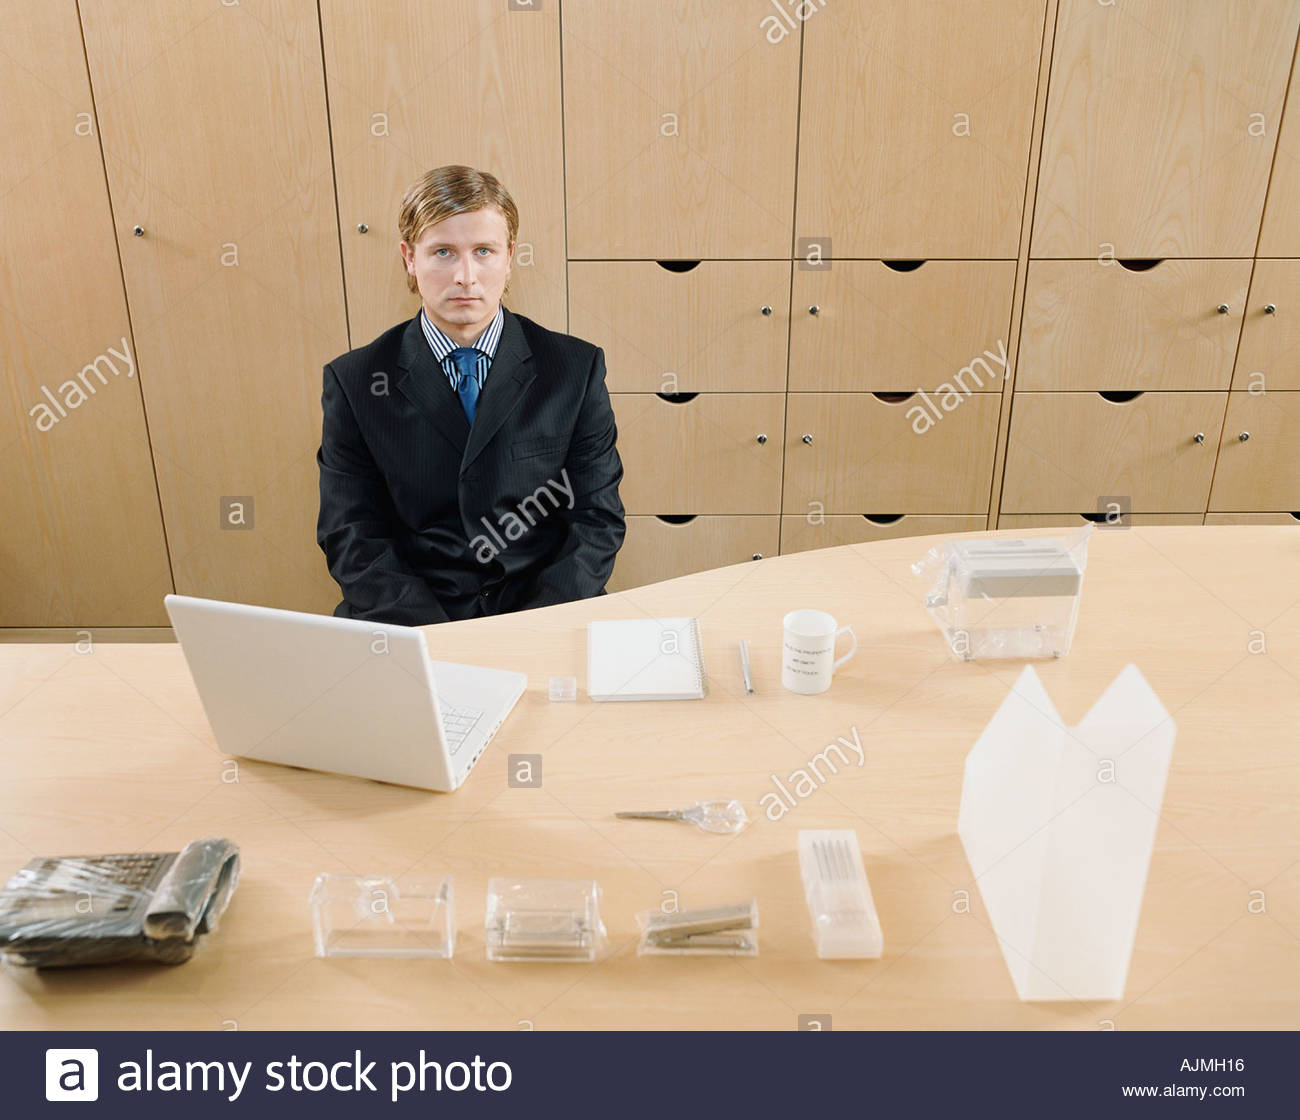 Obsessively tidy businessman - Stock Image